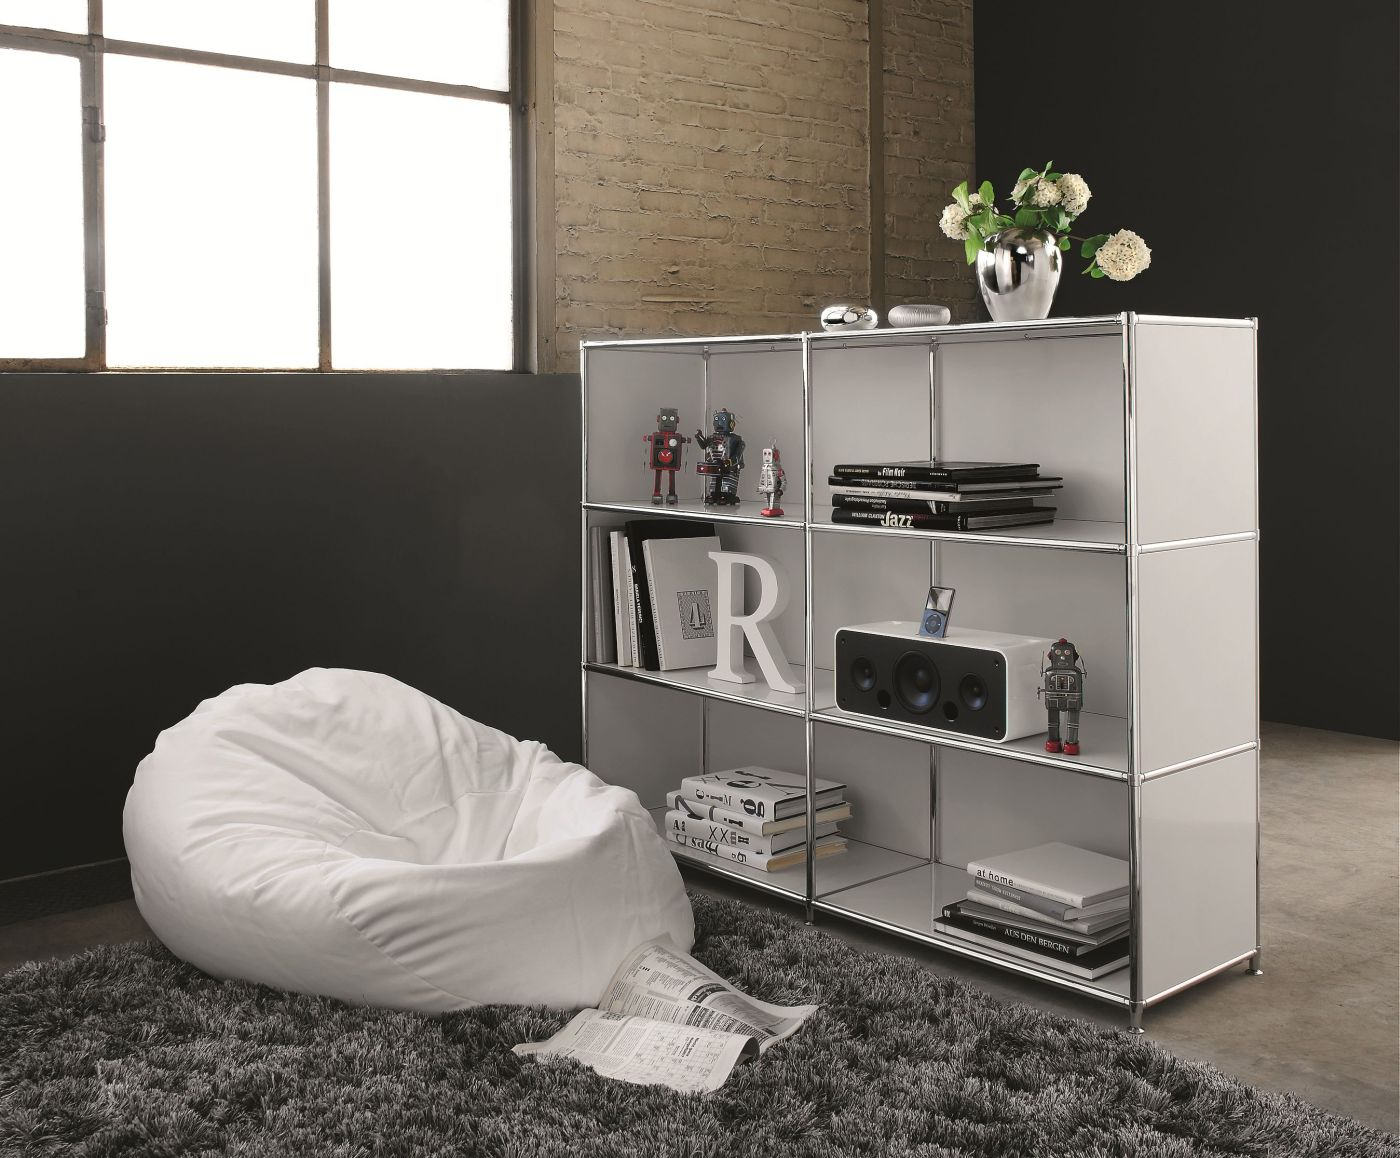 regal system4 trennwand klassiker direkt chefzimmer. Black Bedroom Furniture Sets. Home Design Ideas